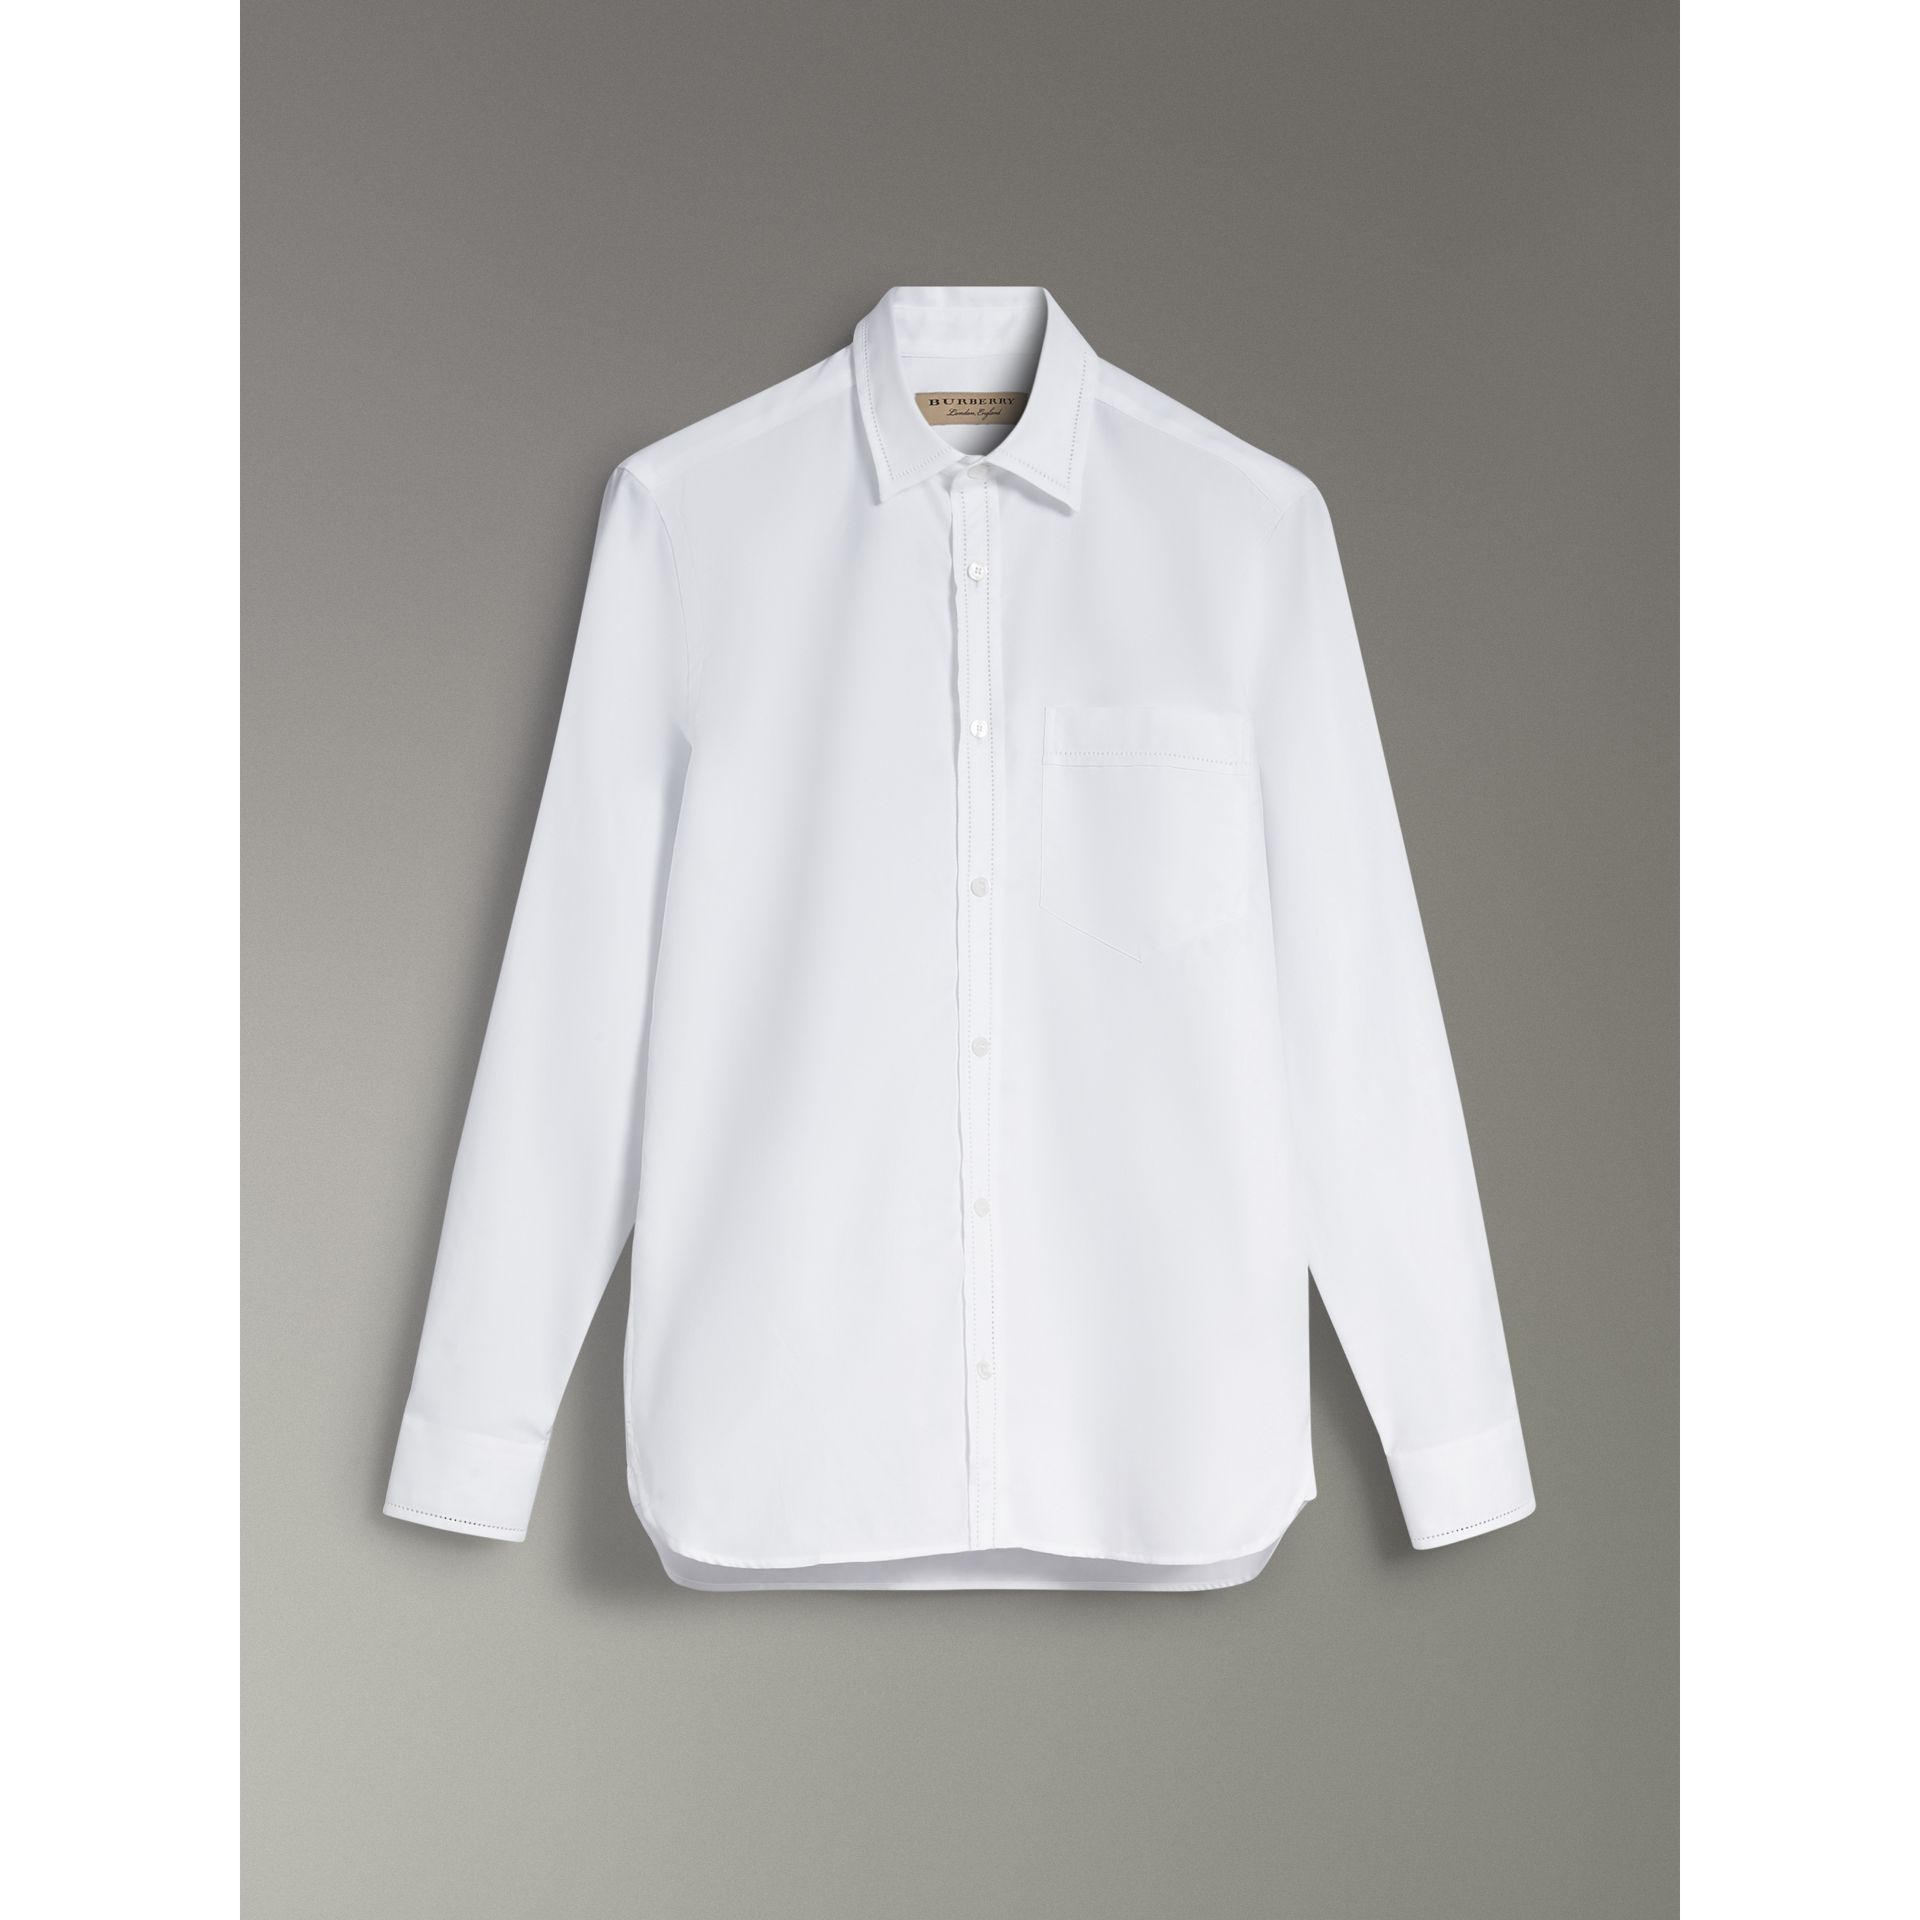 Cotton Oxford Shirt in White - Men | Burberry United States - gallery image 3